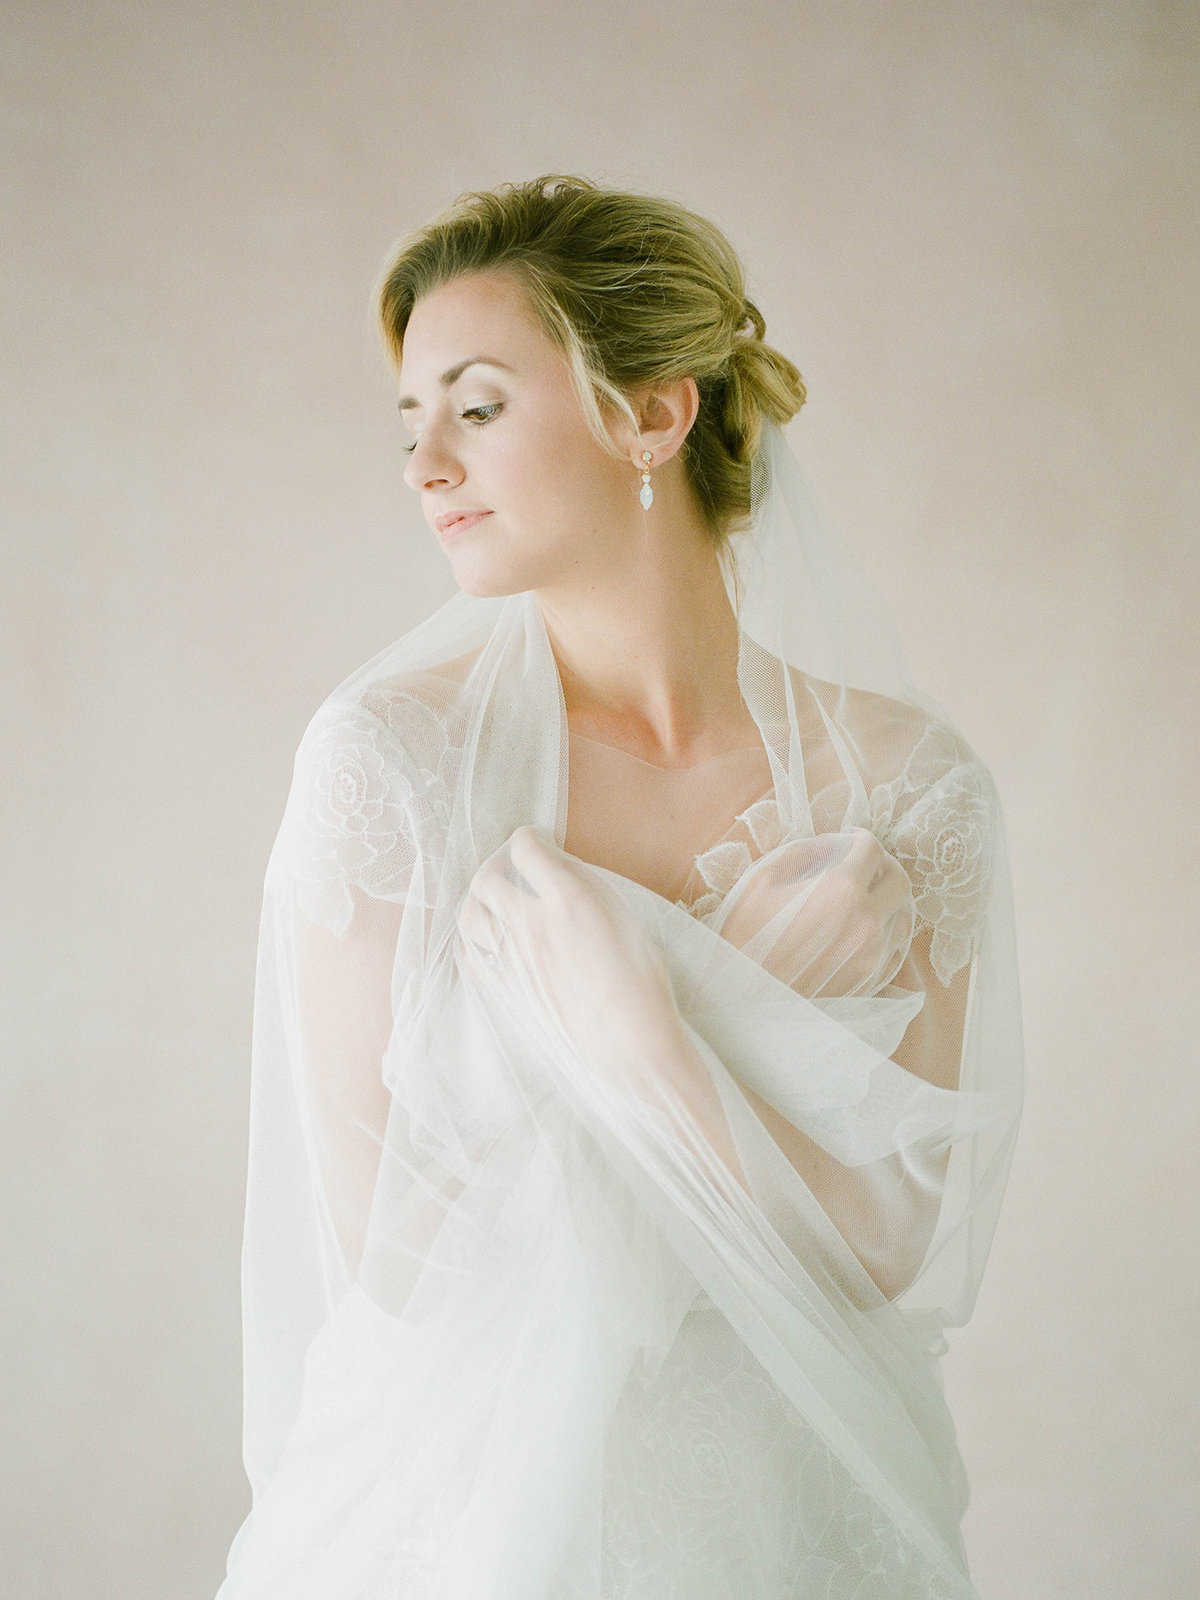 Fine Art Bridal Portraits - Sarah Sunstrom Photography - Film Wedding Photographer - 16